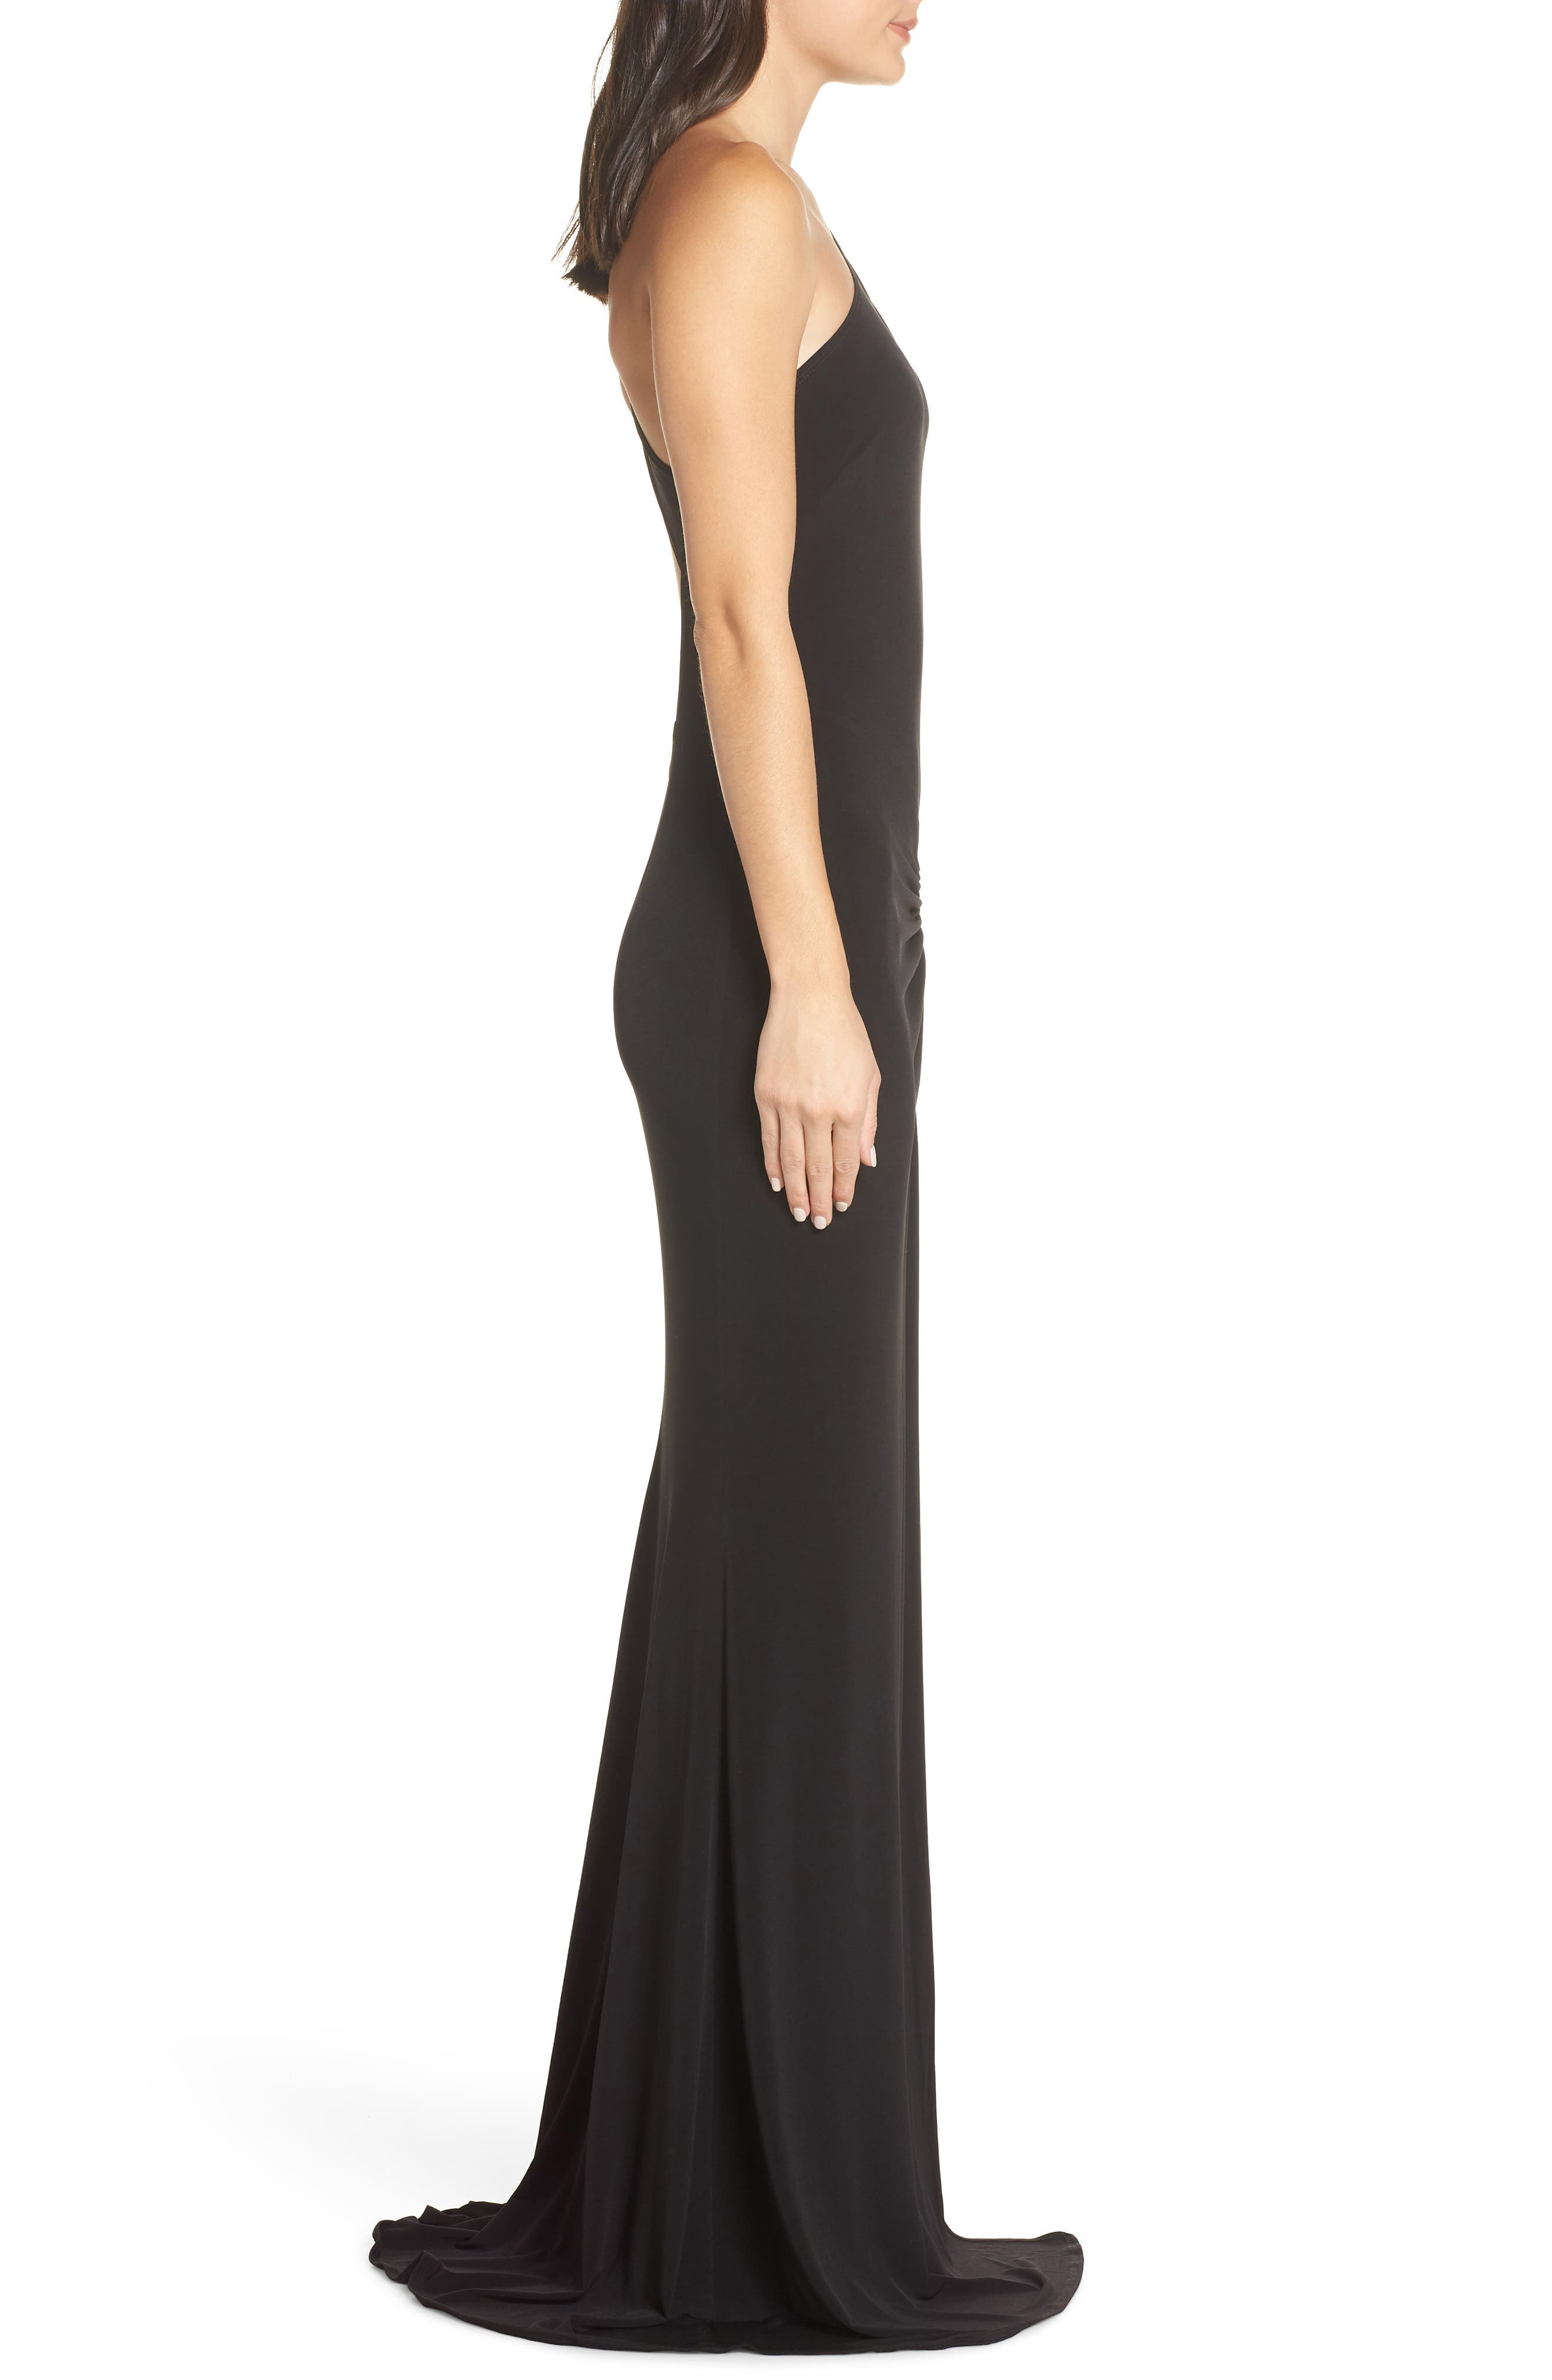 KATIE MAY,                             One-Shoulder Gown,                             Alternate thumbnail 3, color,                             BLACK